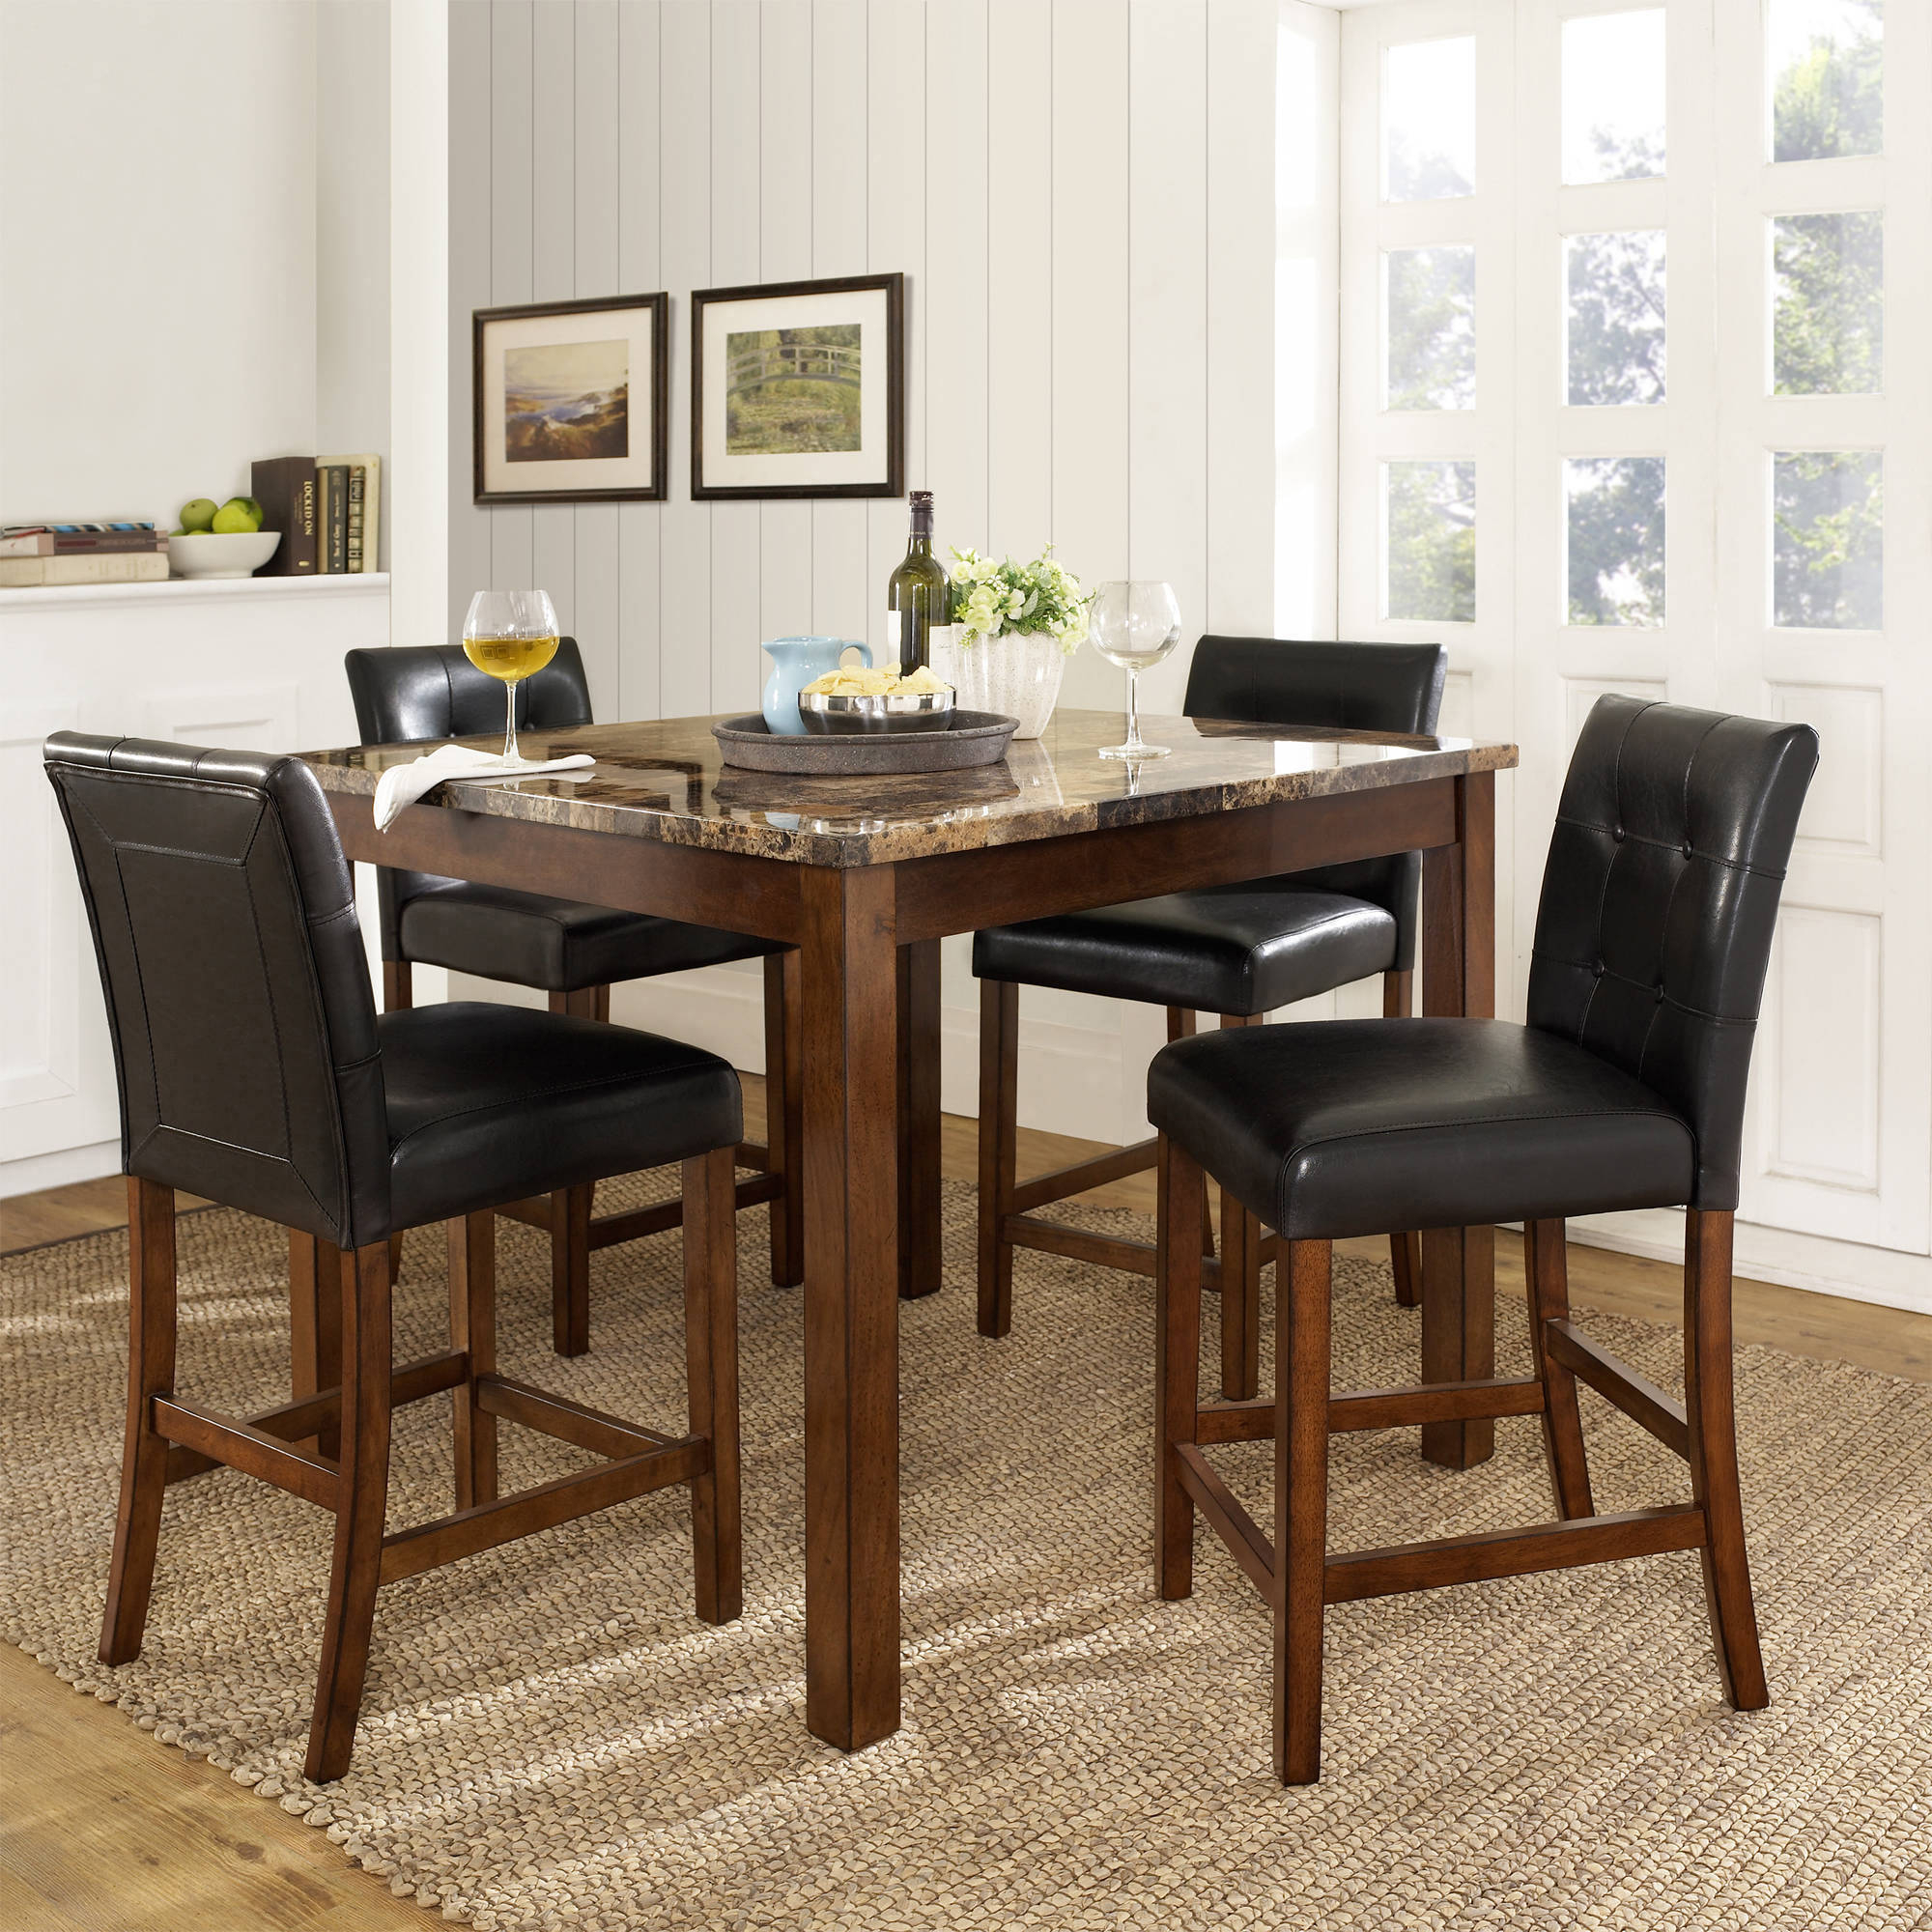 Dorel Living Andover 5 Piece Counter Height Dining Set, Multiple Colors Regarding Most Recent 5 Piece Dining Sets (View 17 of 20)